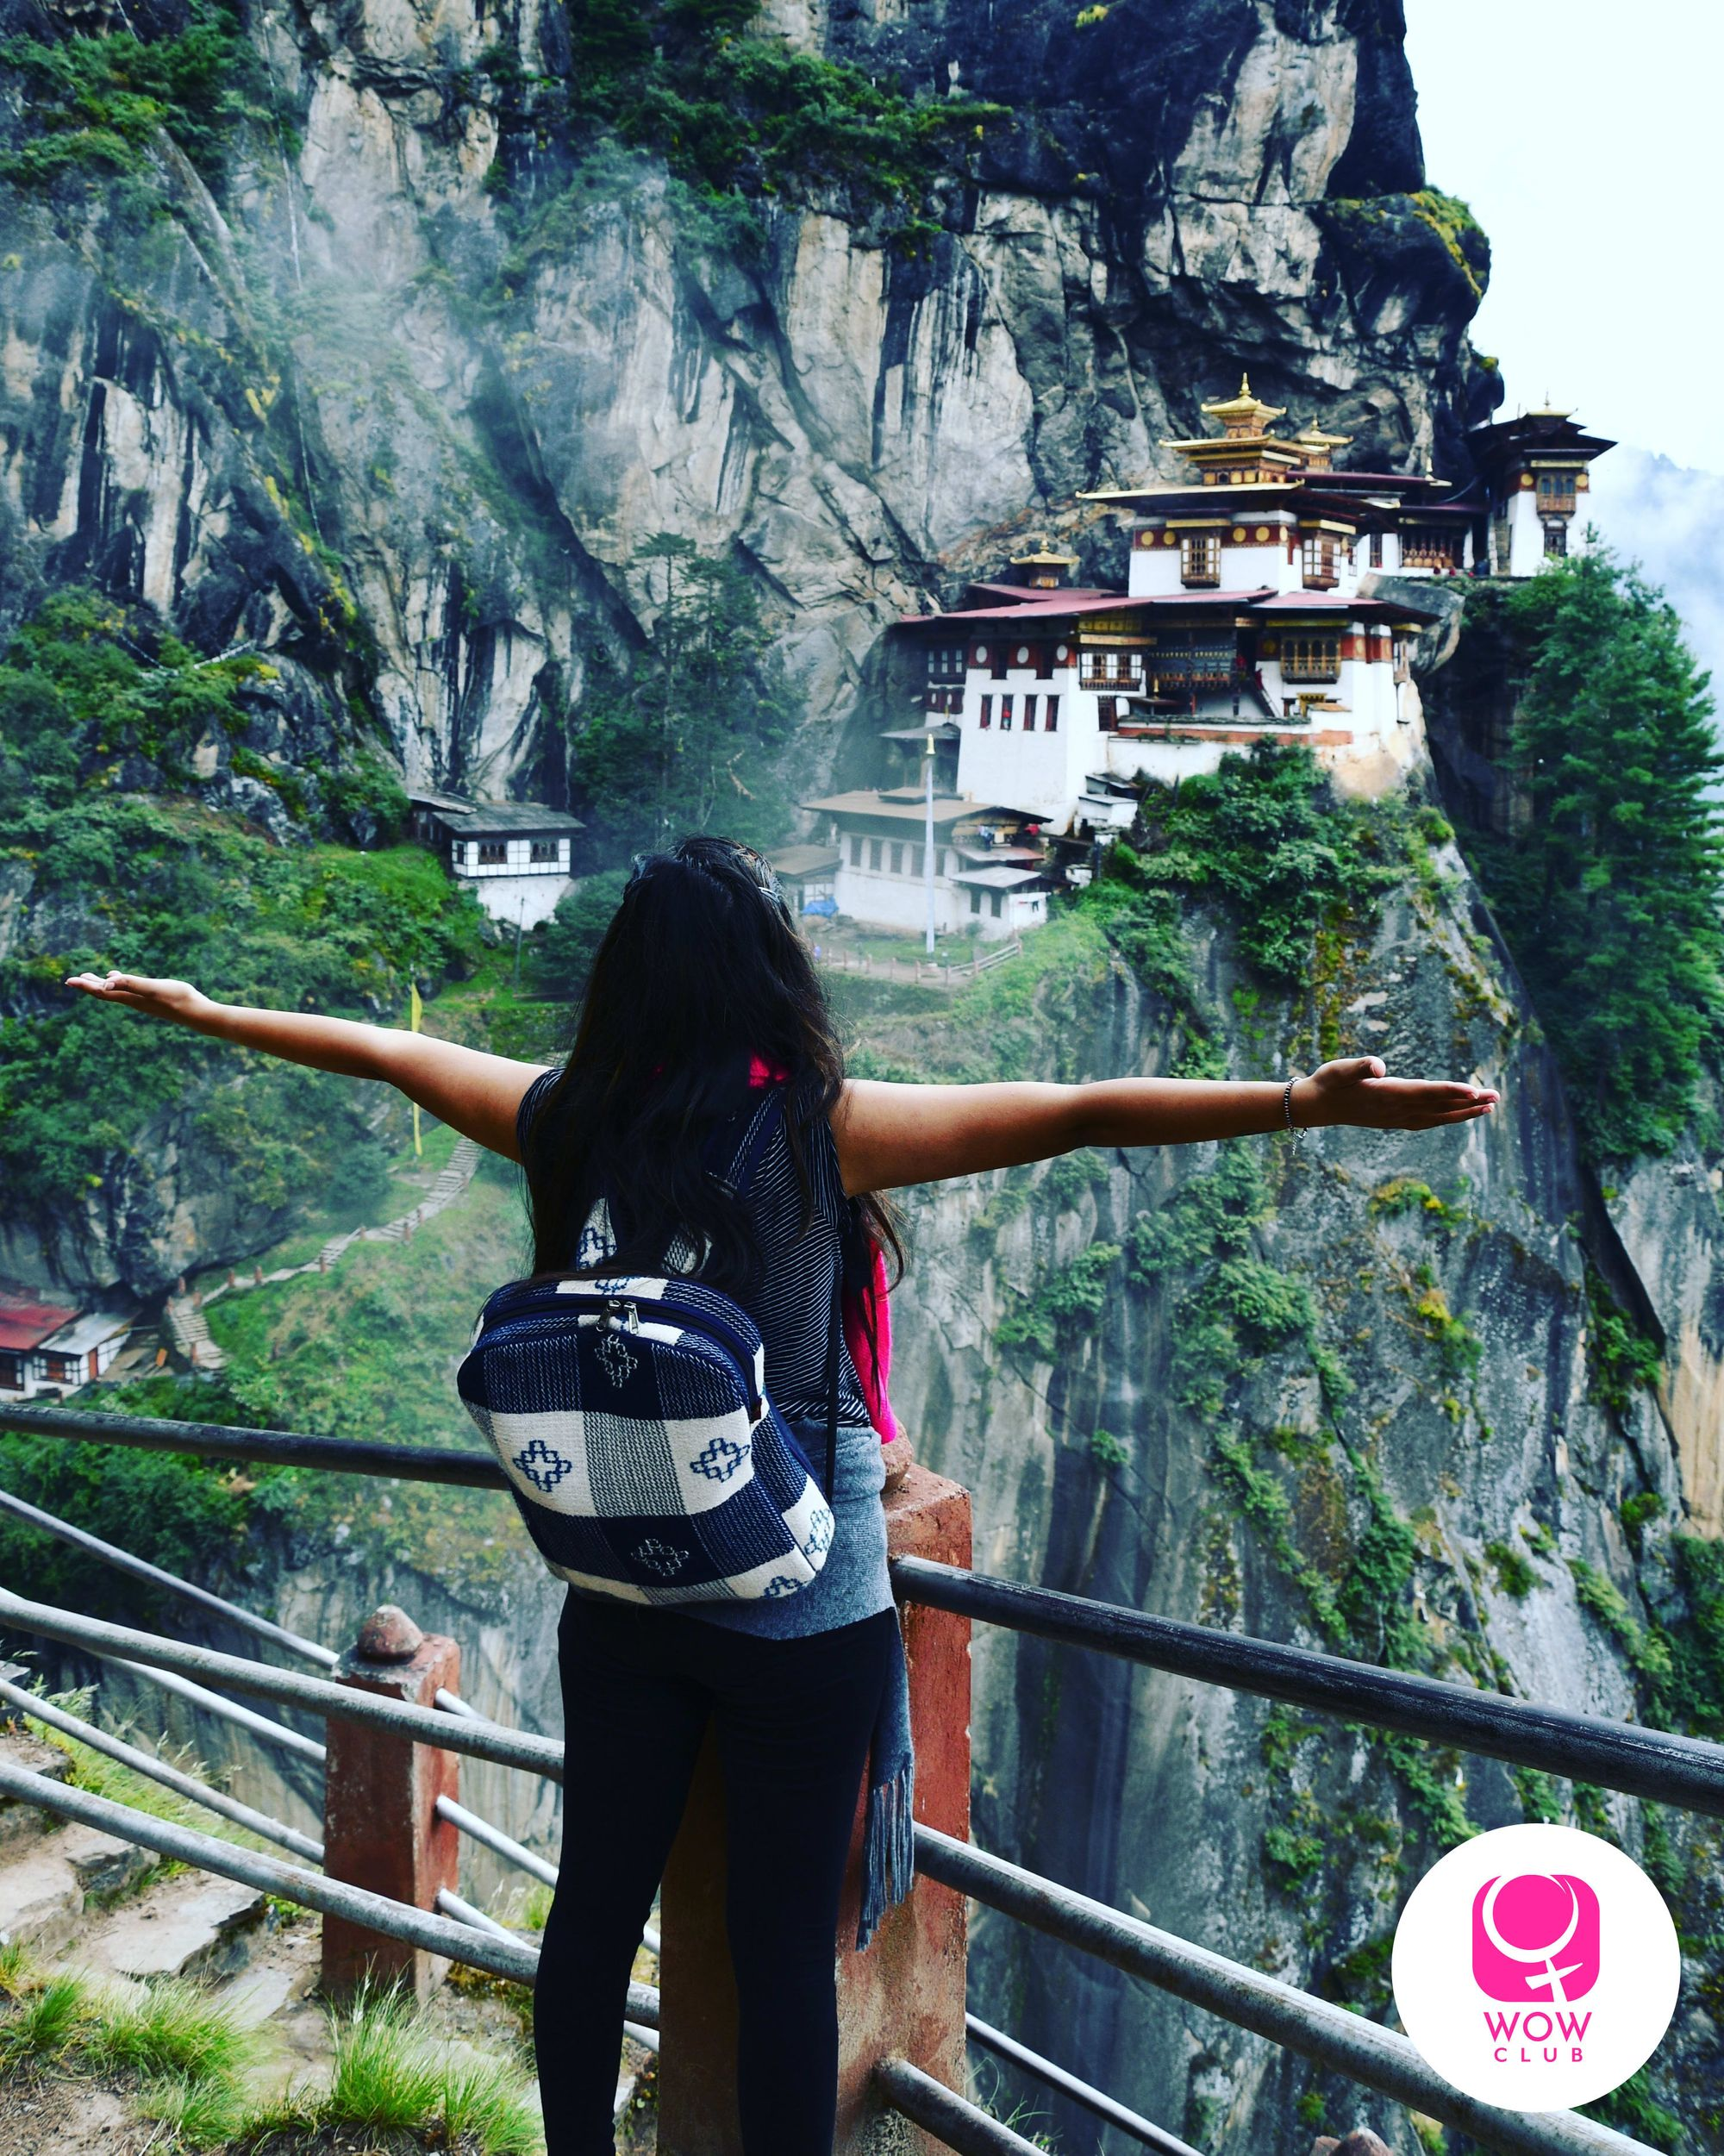 Tigers nest in Bhutan is a great place for an all women solo trip